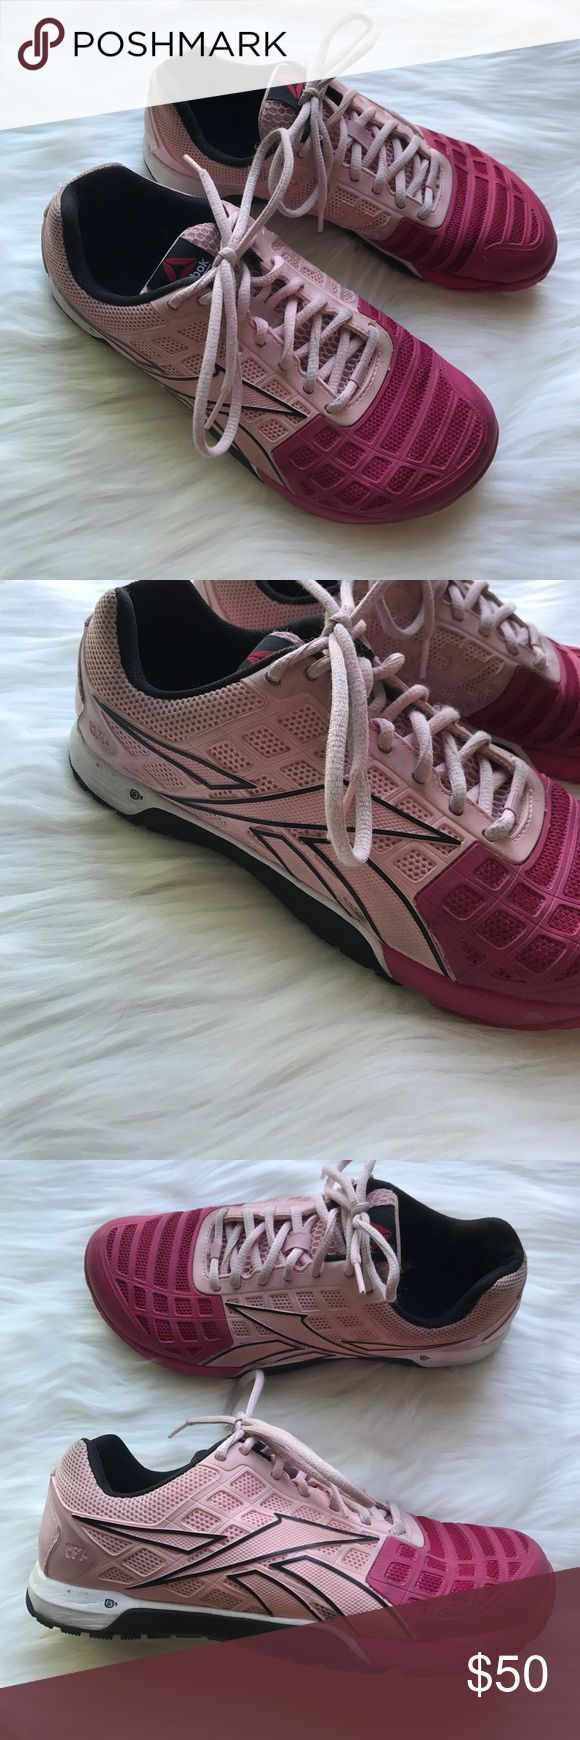 Reebok Nano 3 Pink All my items come from smoke free and pet free home. Feel free to ask me any questions about my items. I will try to respond in a timely manner. 🙂  🚩 NO TRADES 🚩 NO LOWBALL OFFERS 🚩 NO MODELING  🏷 Please don't inquire about prices in the comments. Make a reasonable offer and I'll either accept, counter, or decline. Reebok Shoes Athletic Shoes